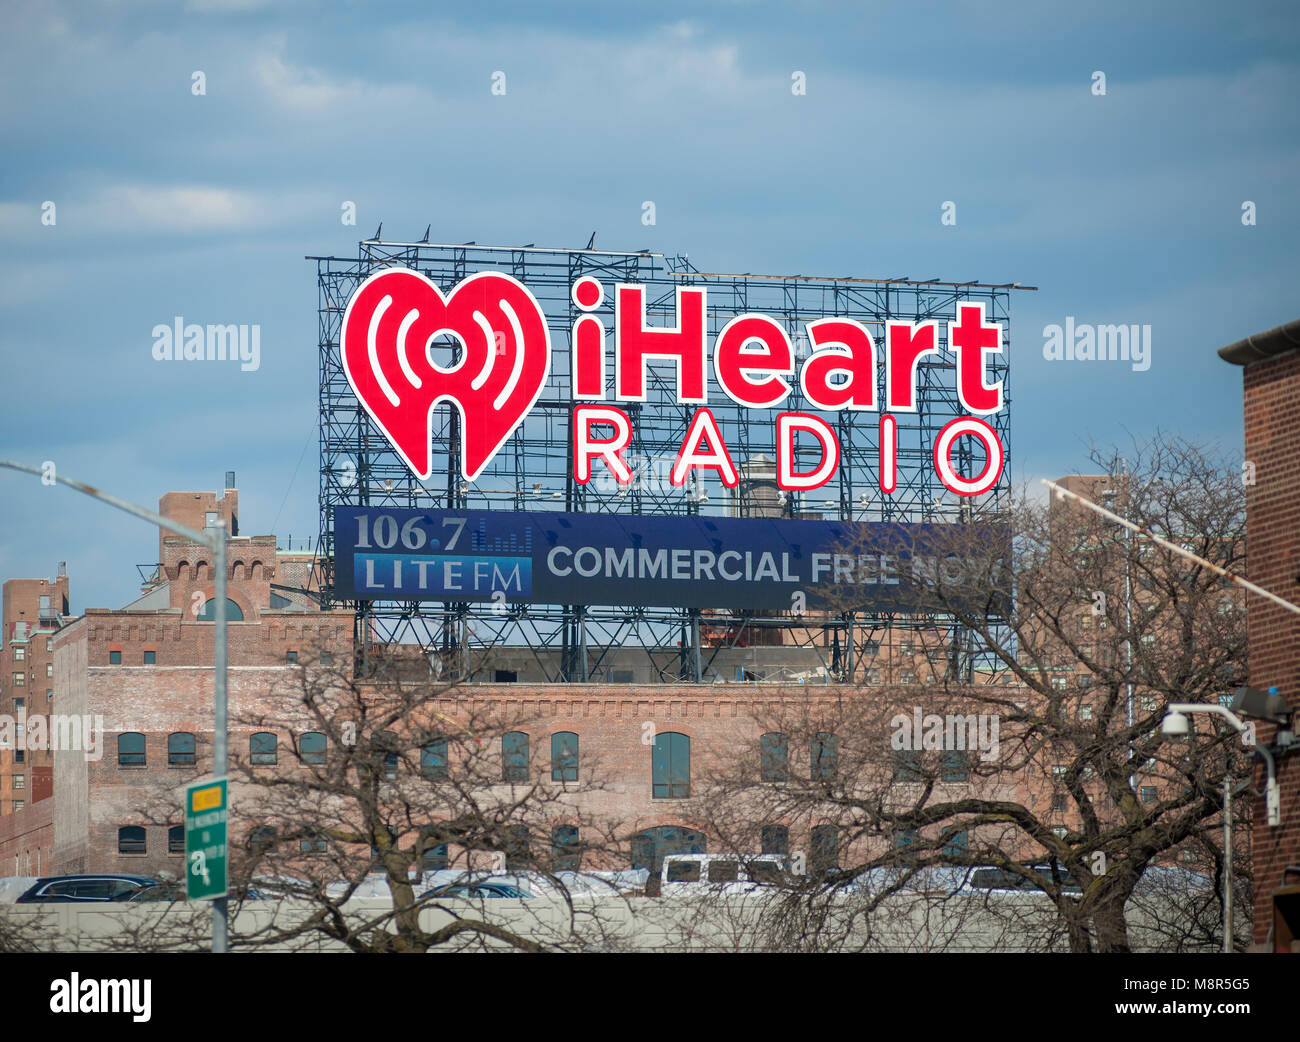 A giant billboard in the Bronx, in New York faces Manhattan and advertises iHeartMedia on Thursday, March 15, 2018. - Stock Image